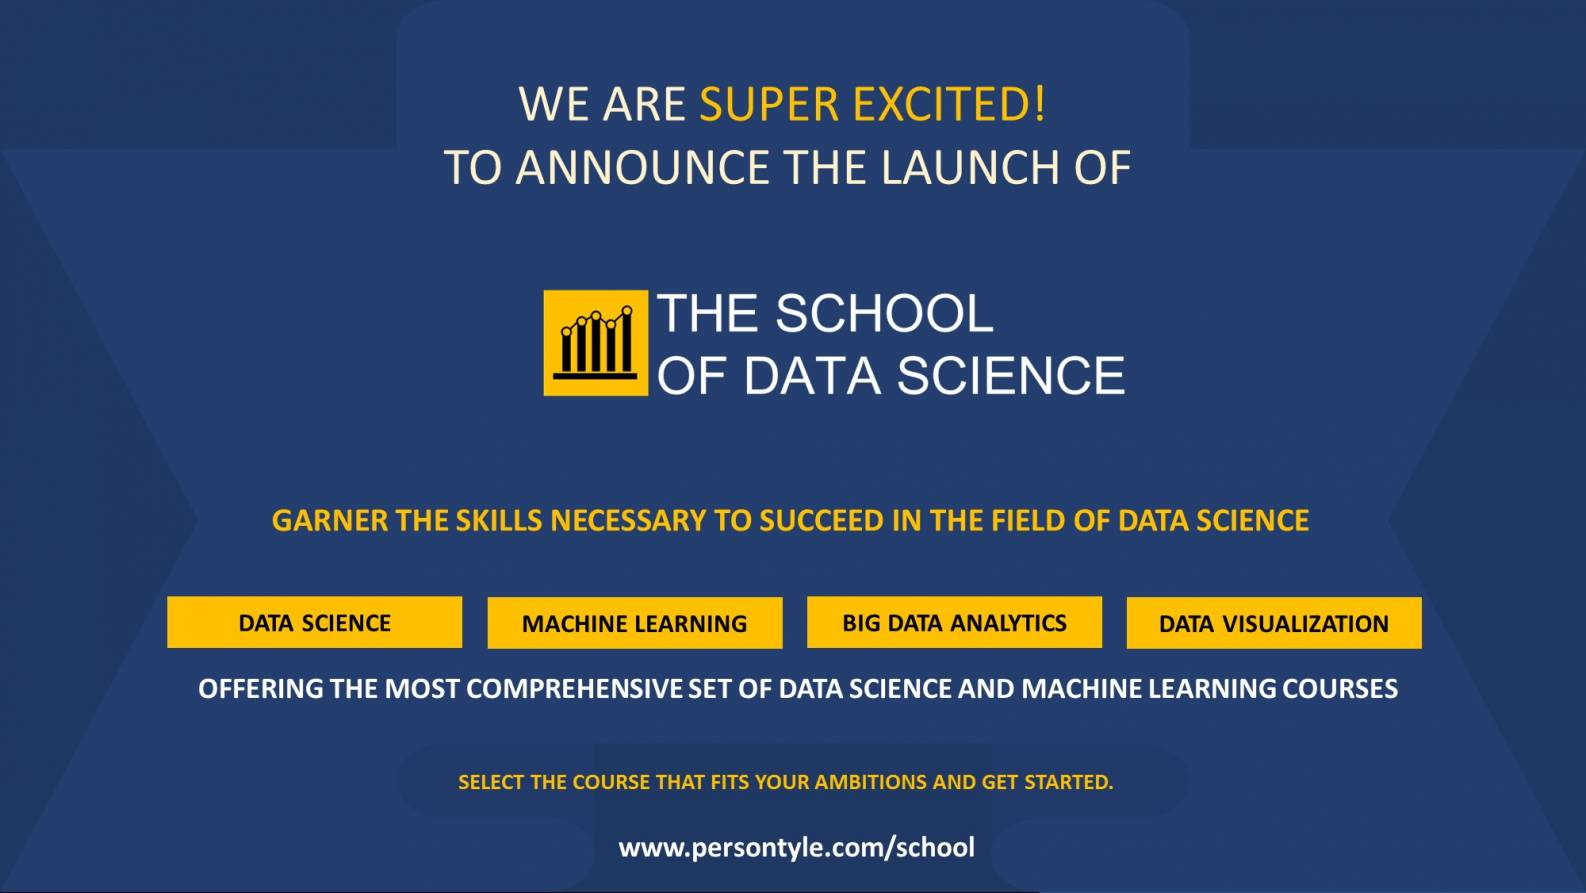 School of Data Science Launch